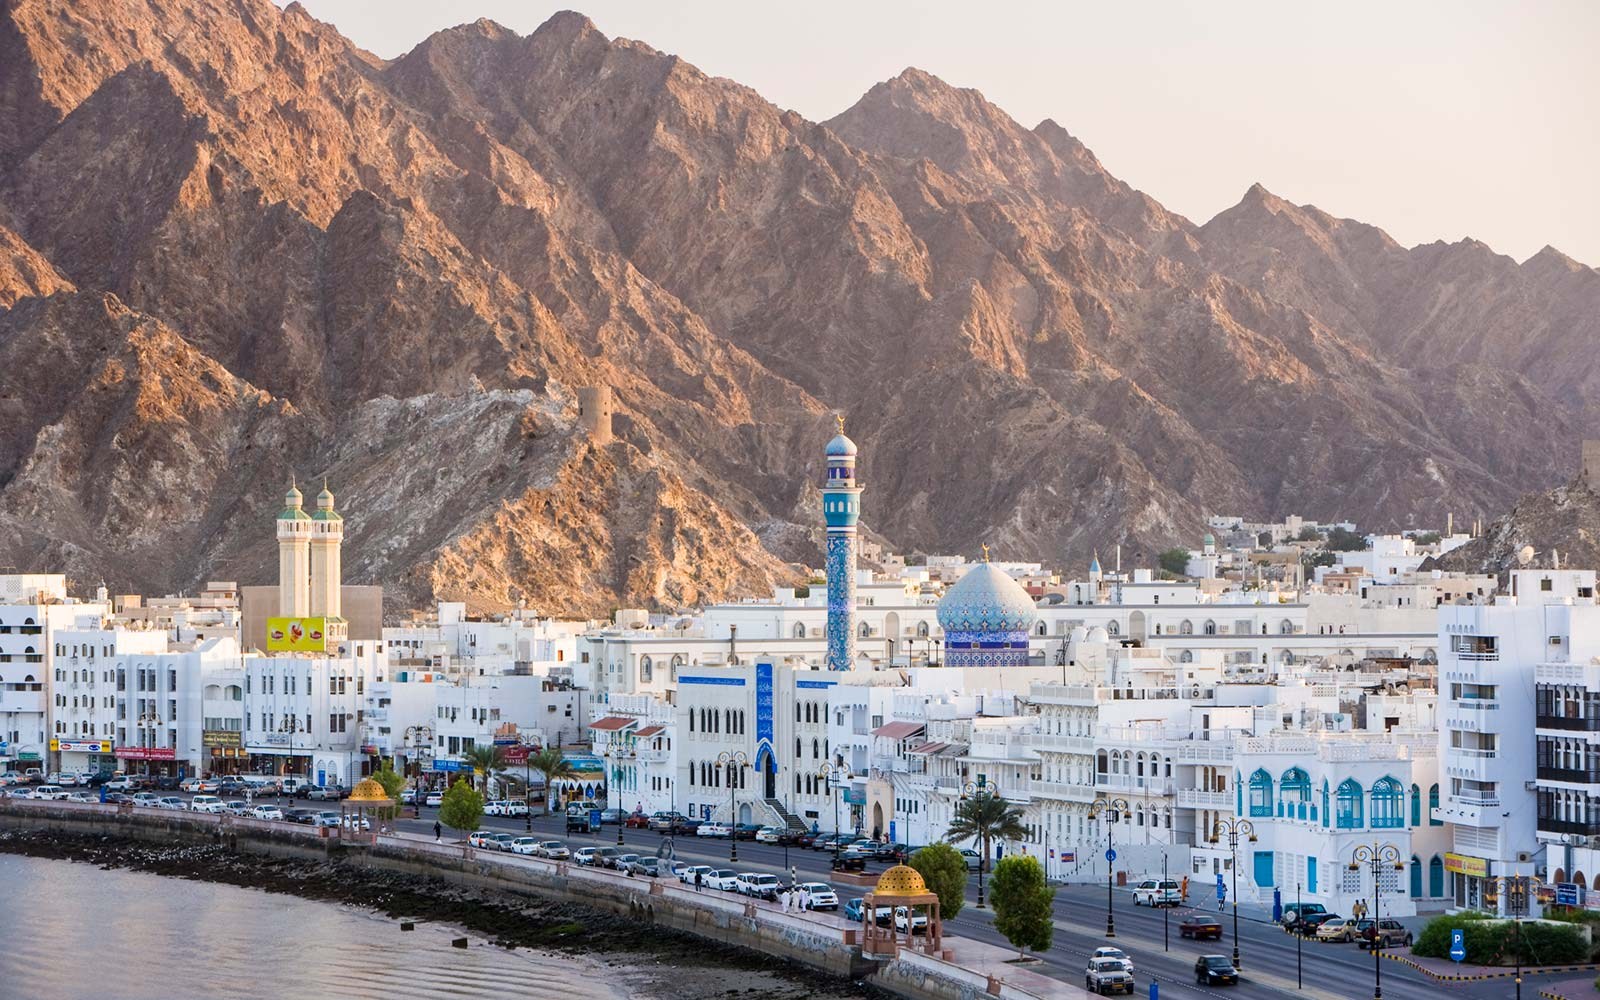 Travel from Dubai to Oman